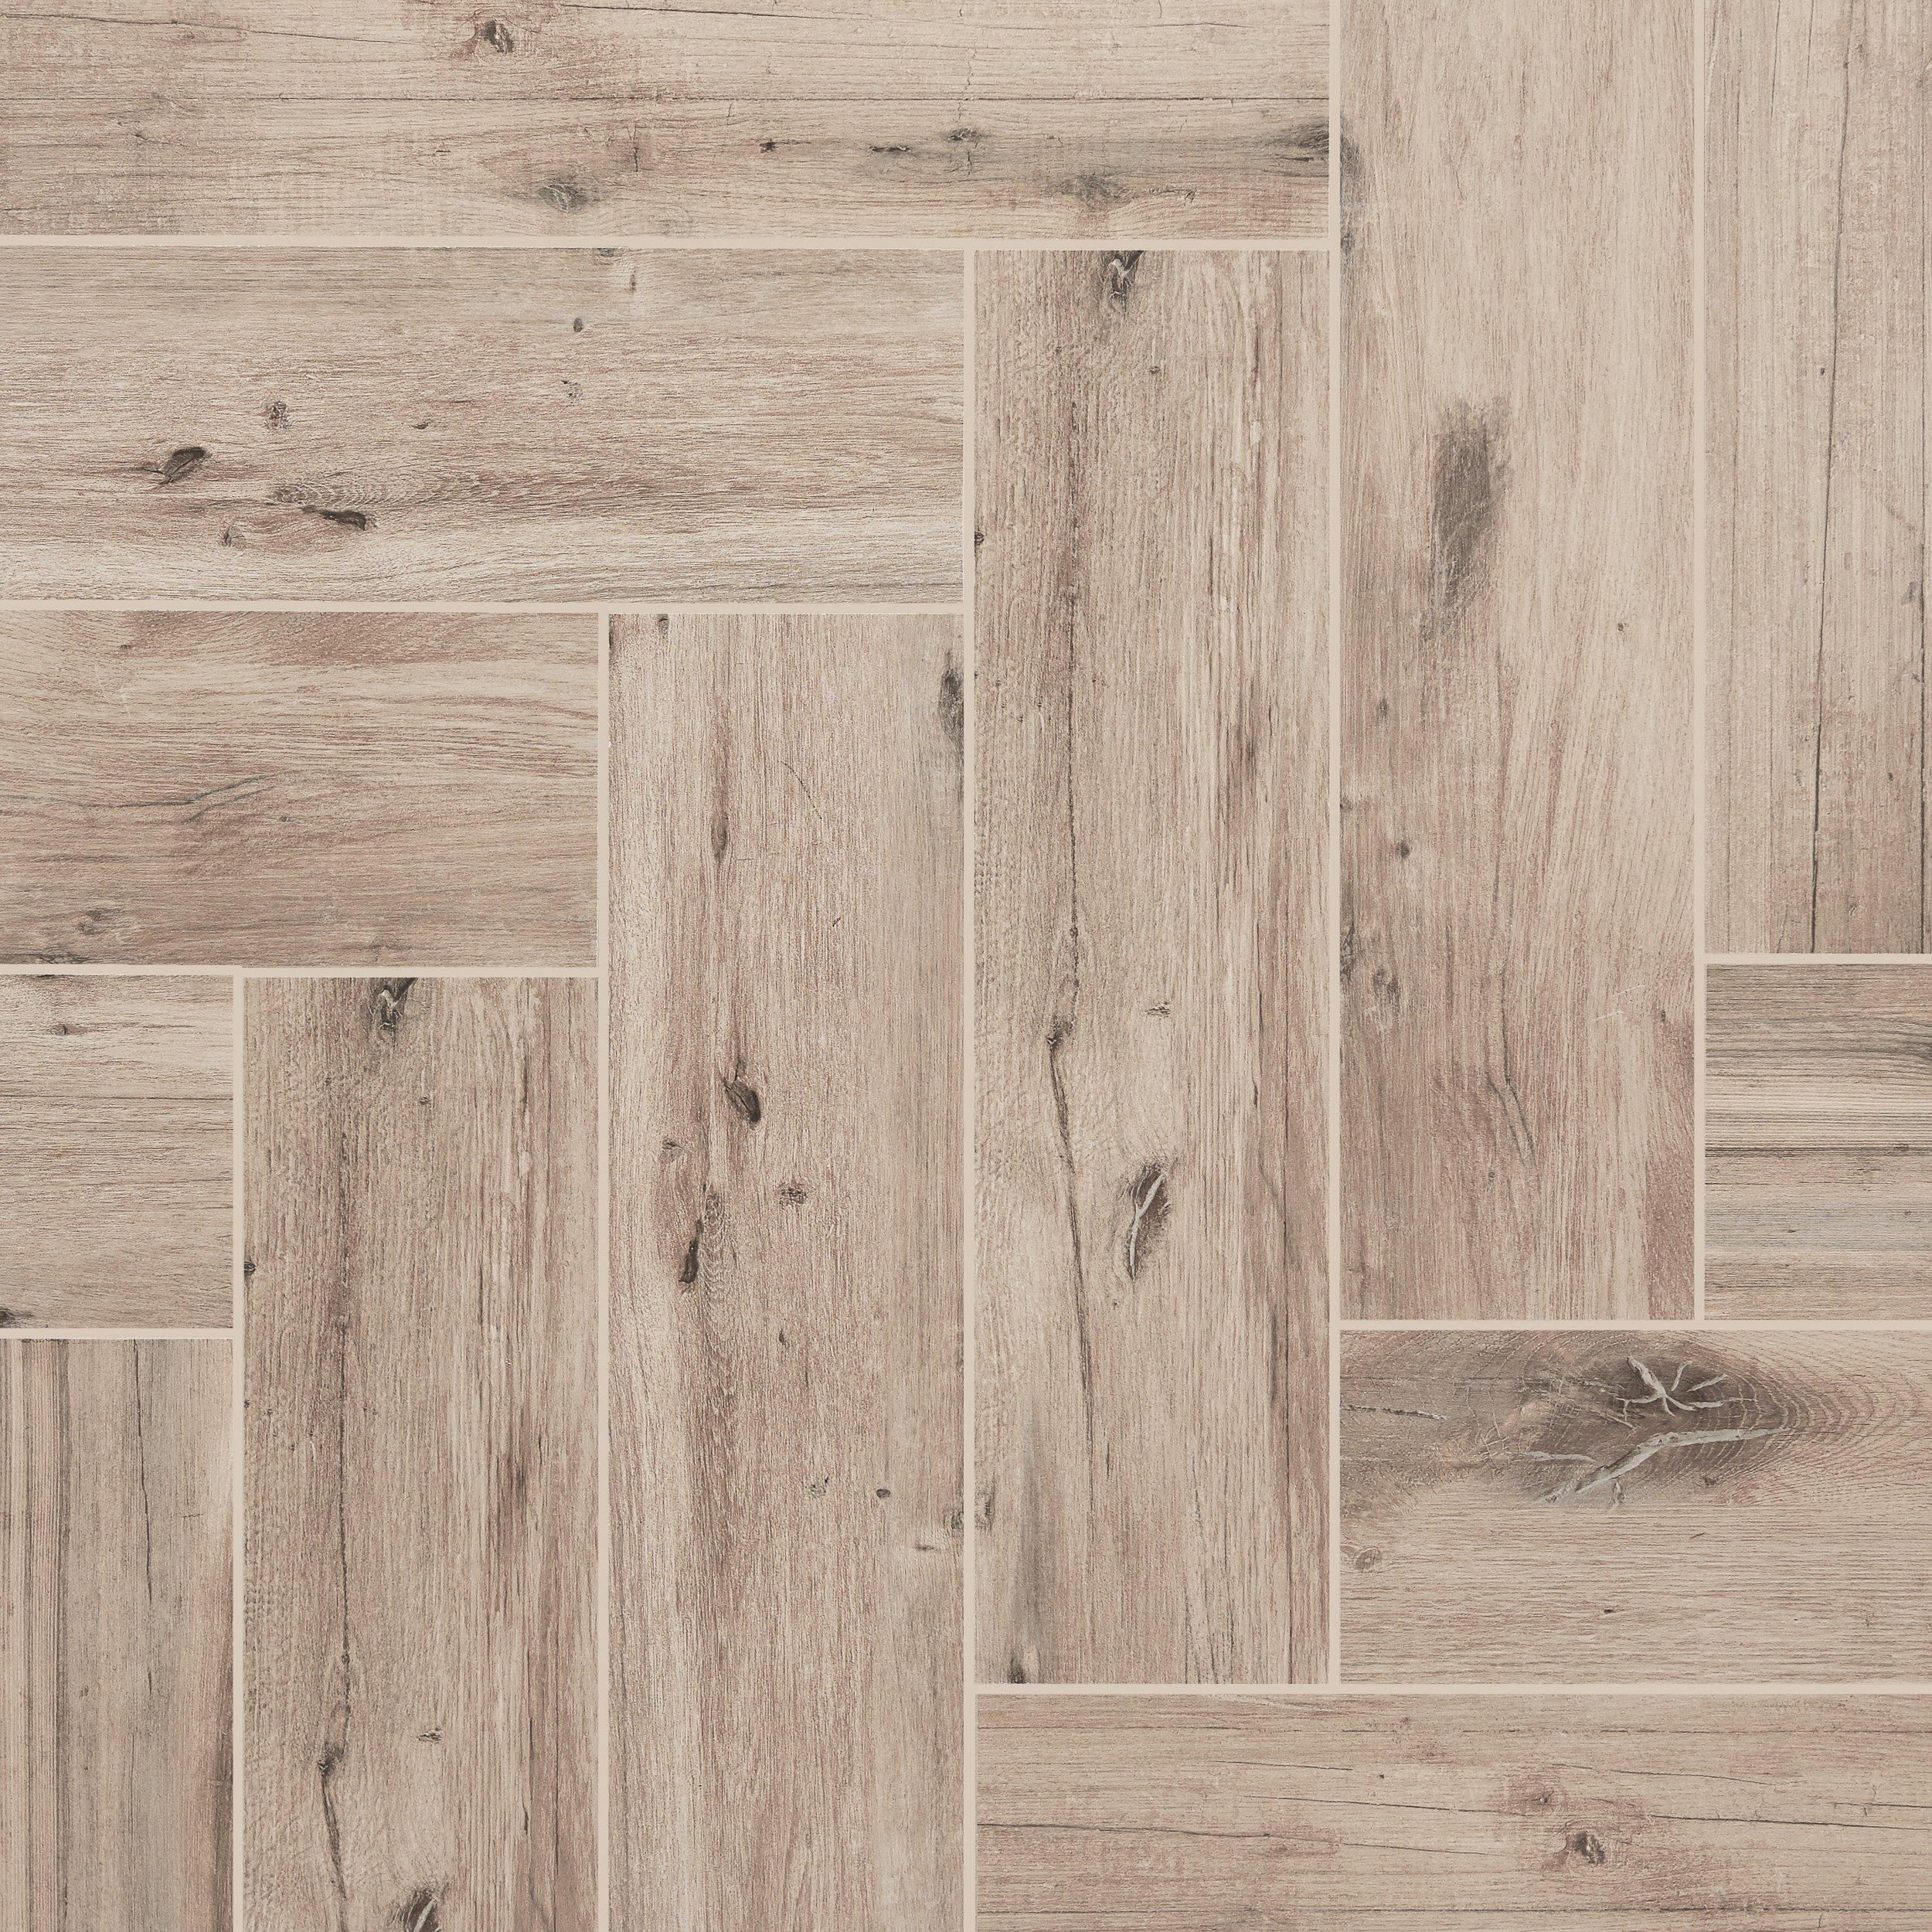 Mansfield Amber Wood Plank Porcelain Tile   6 X 24   100156603 | Floor And  Decor